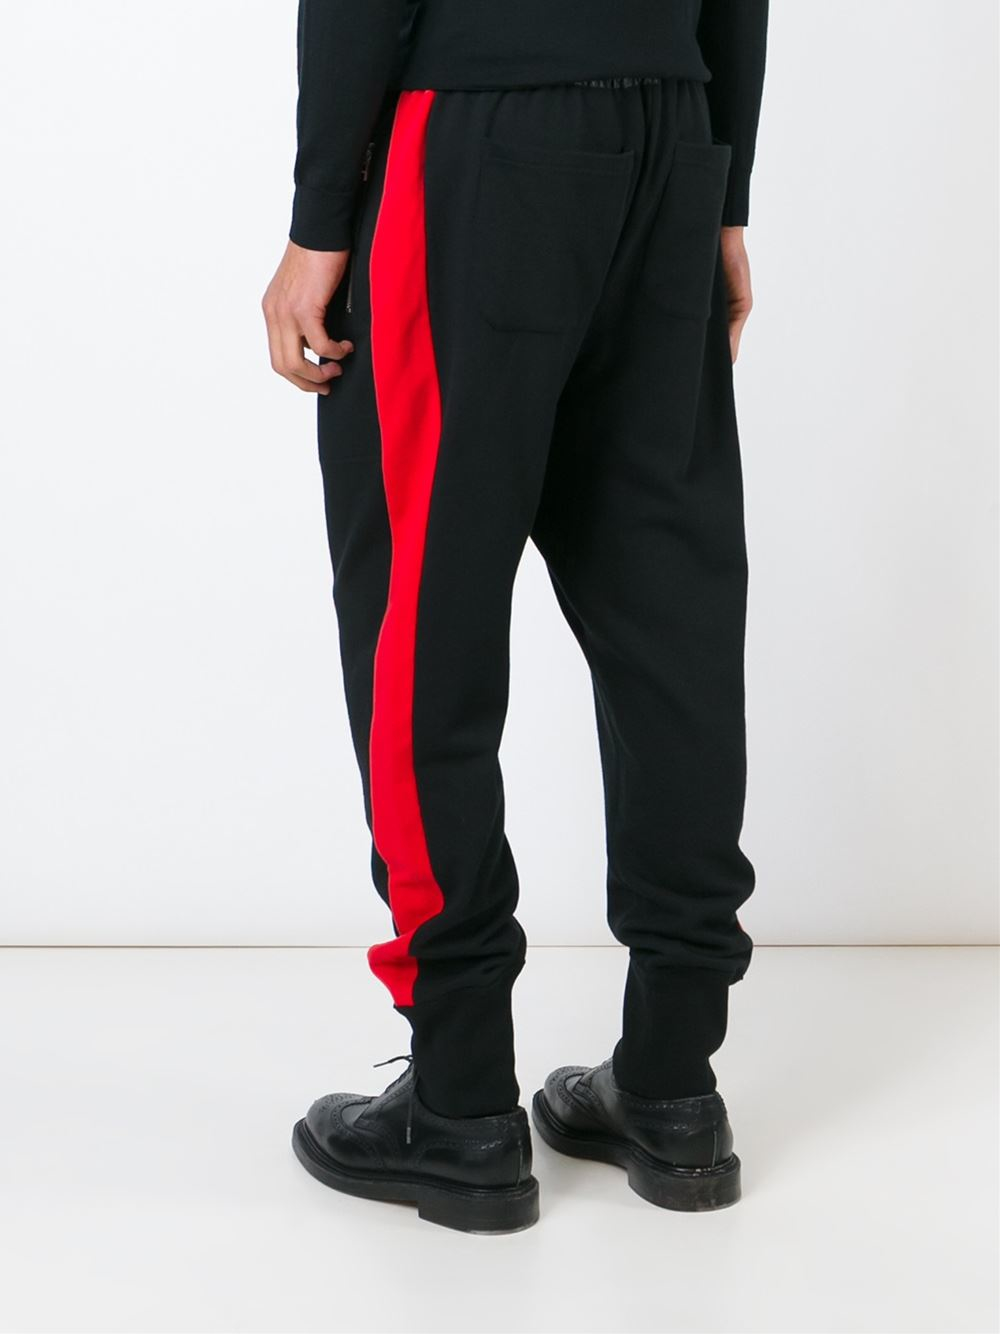 Unconditional Cotton 'band Plush' Trousers in Black for Men